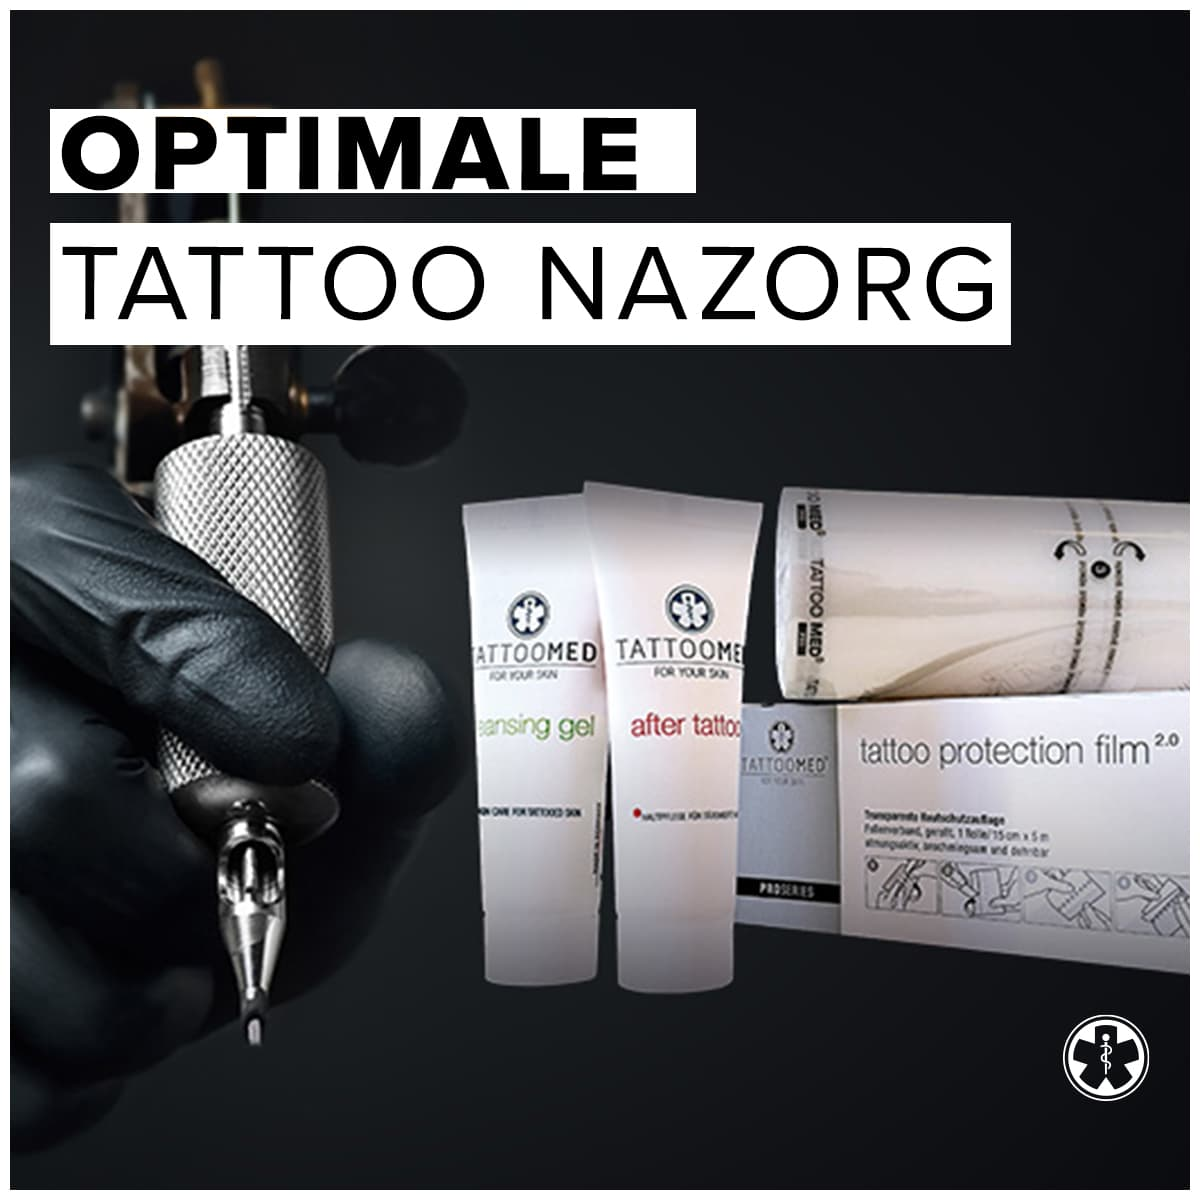 Tattoo nazorg